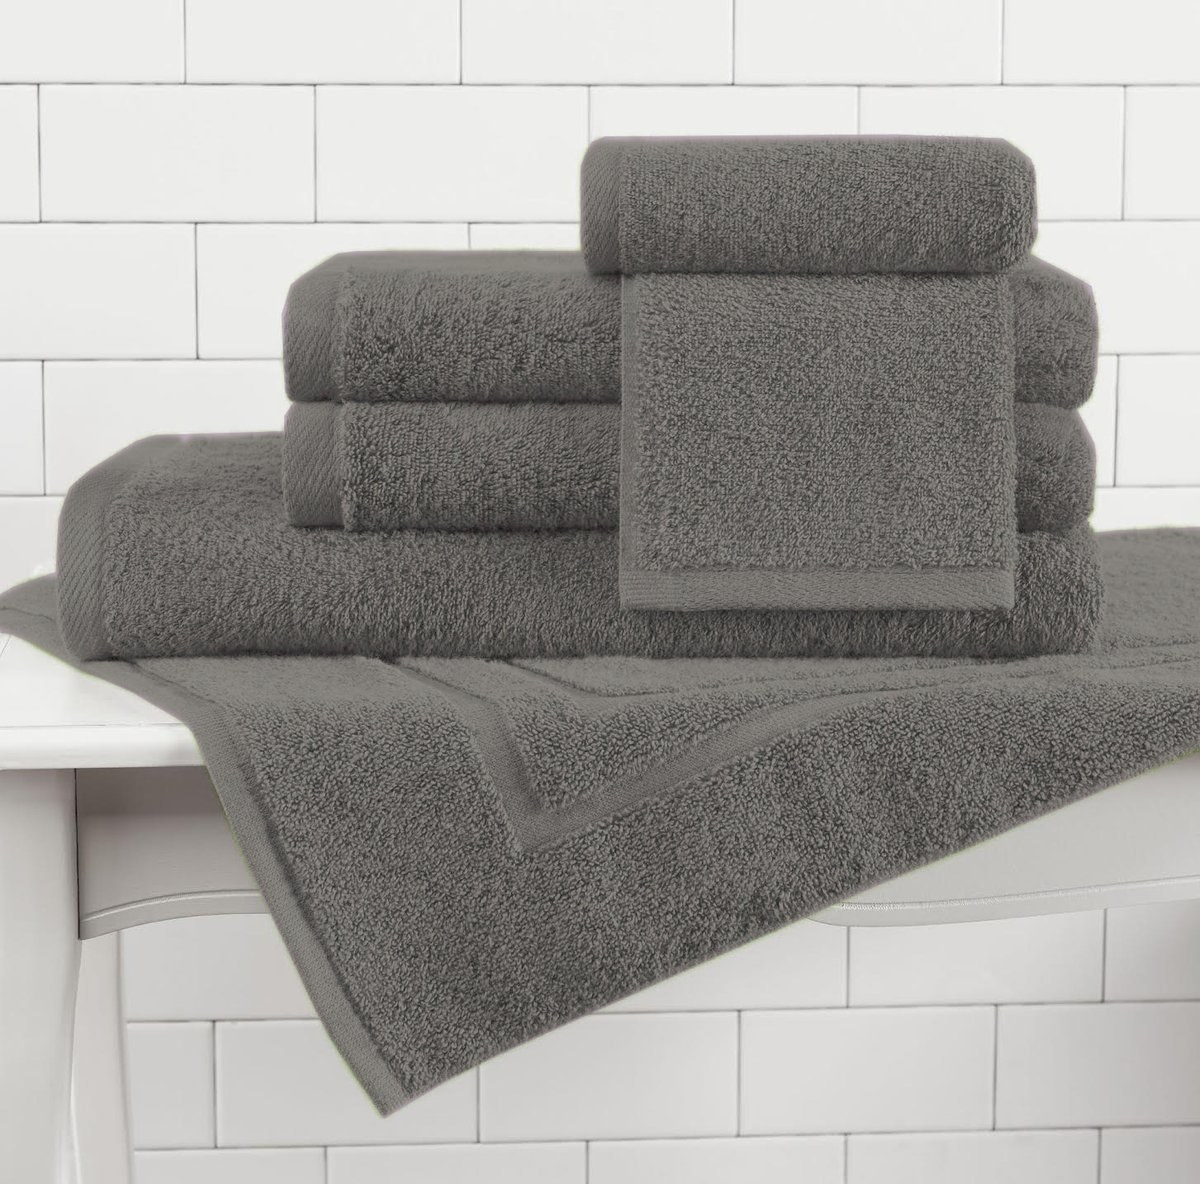 the gray set of towels